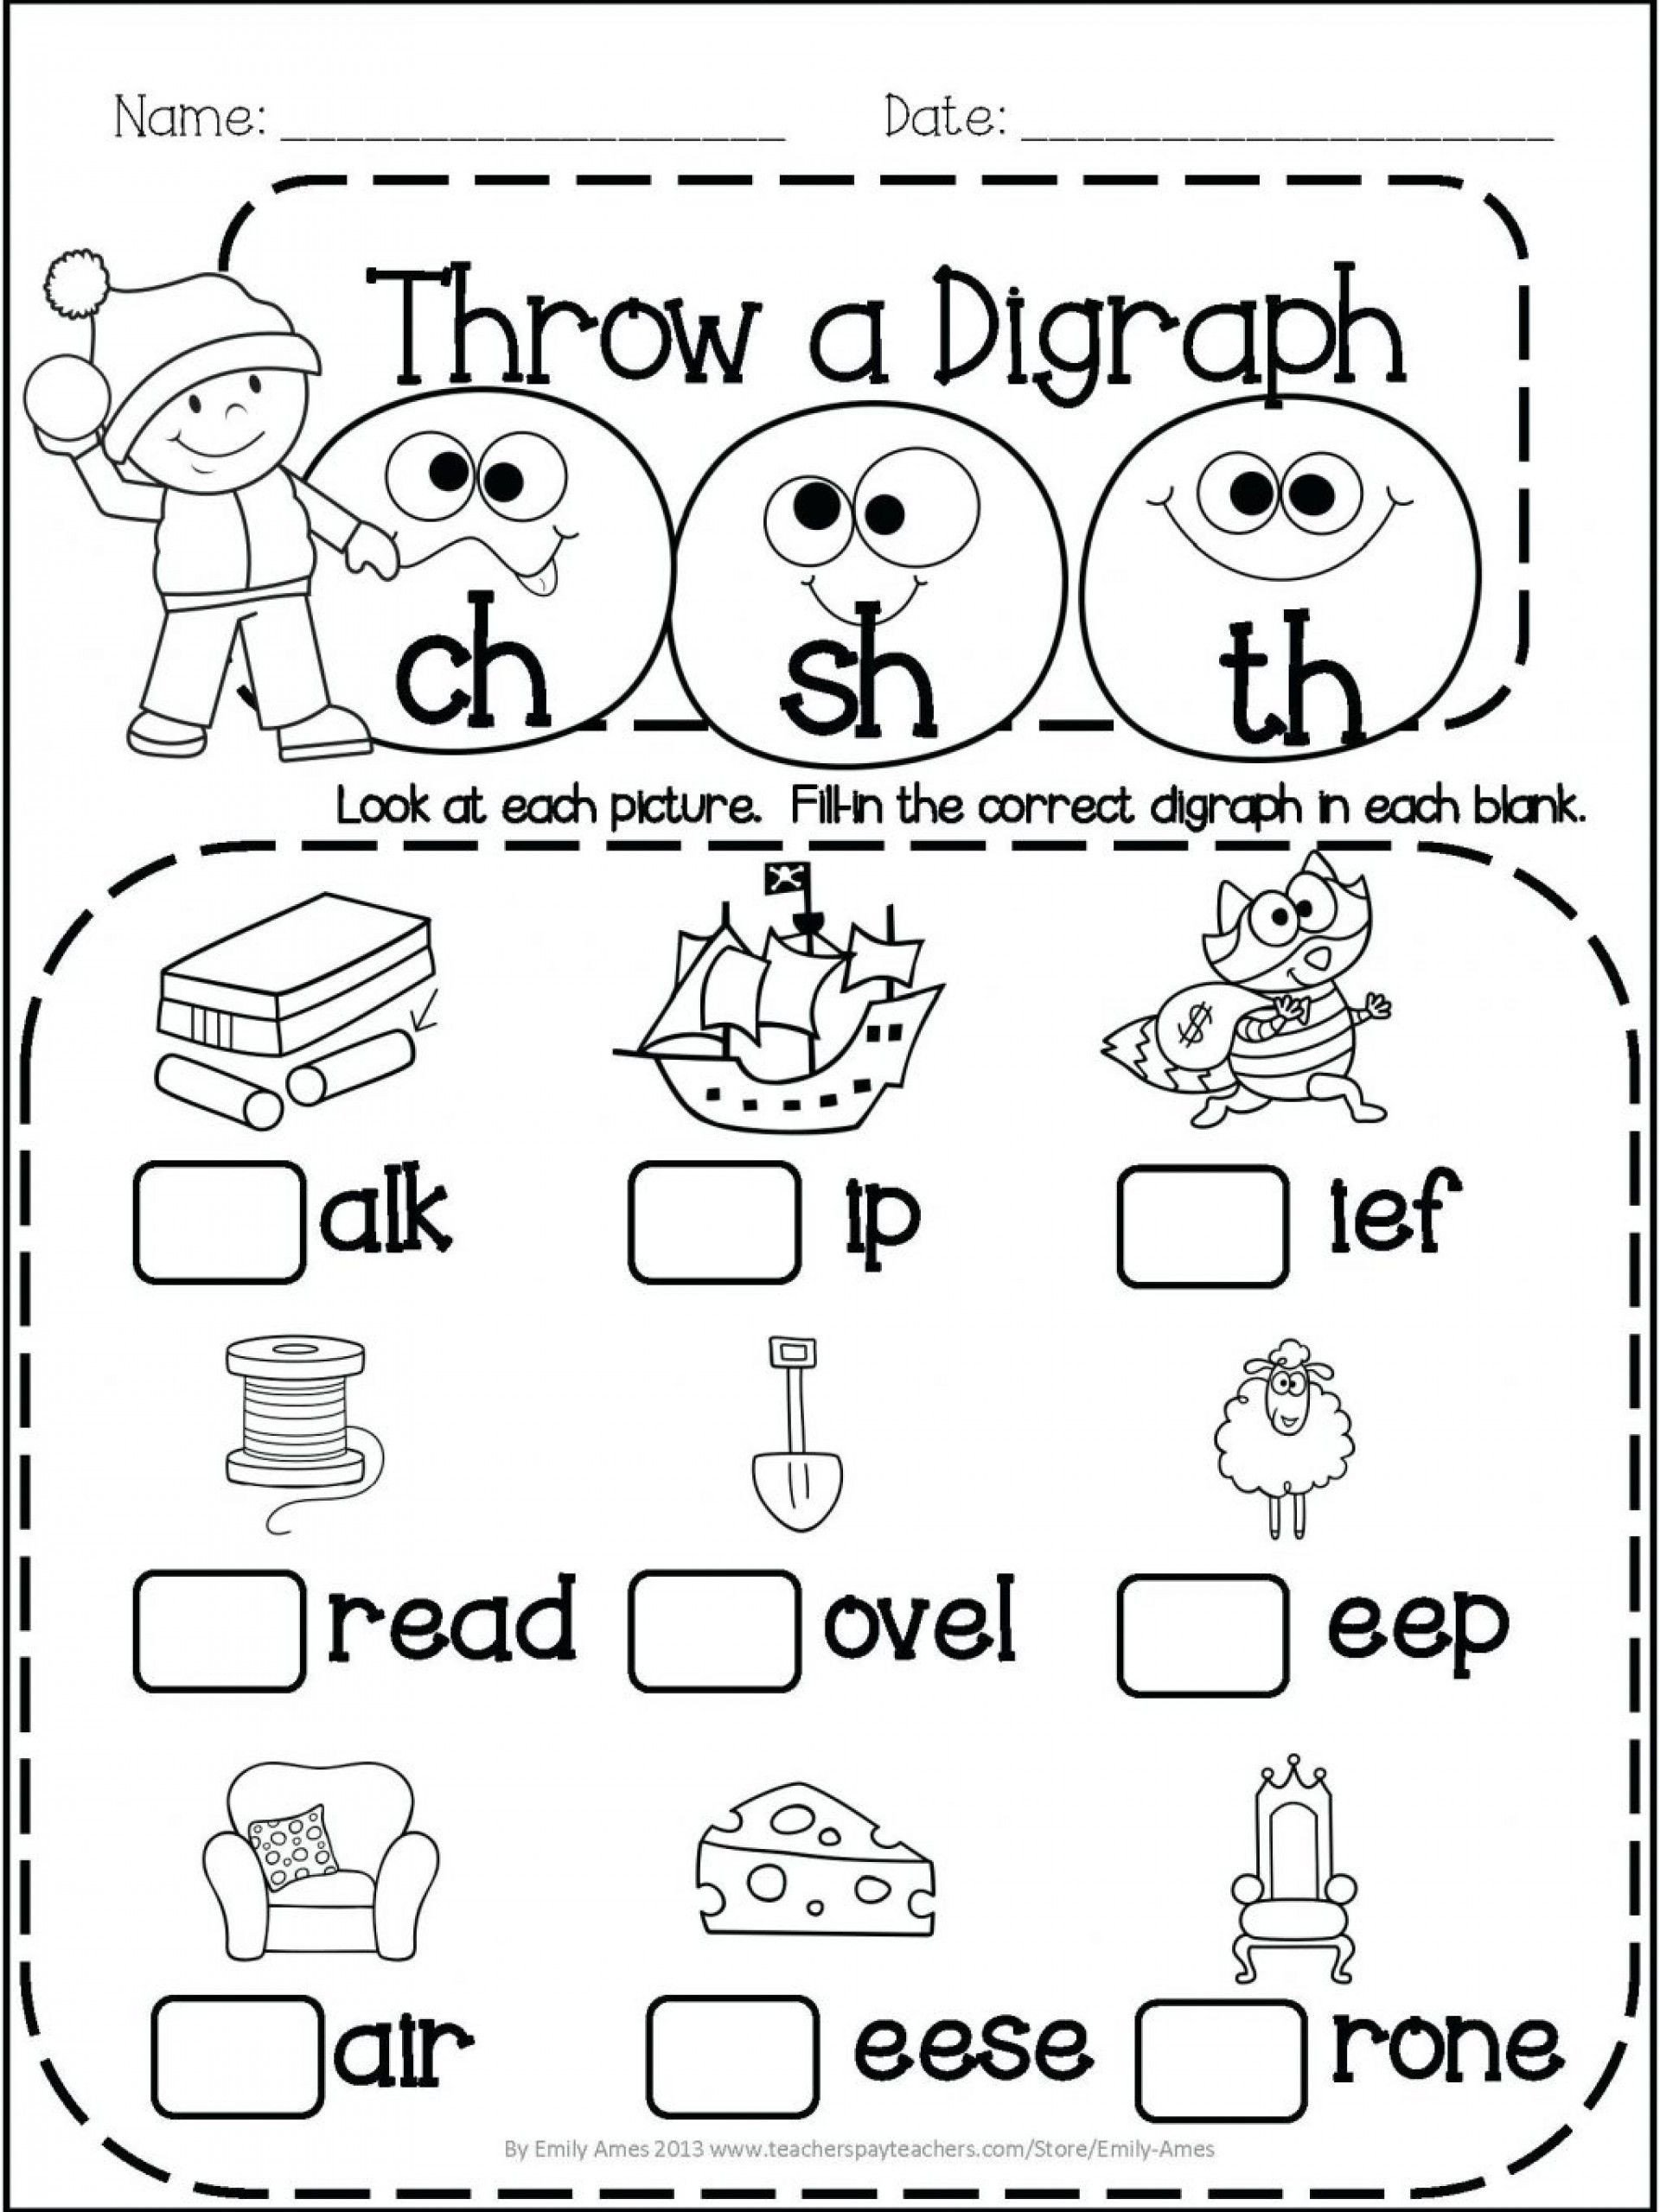 Long Vowel Worksheets for Kindergarten 4 Worksheet Free Preschool Kindergarten Worksheets Vowels